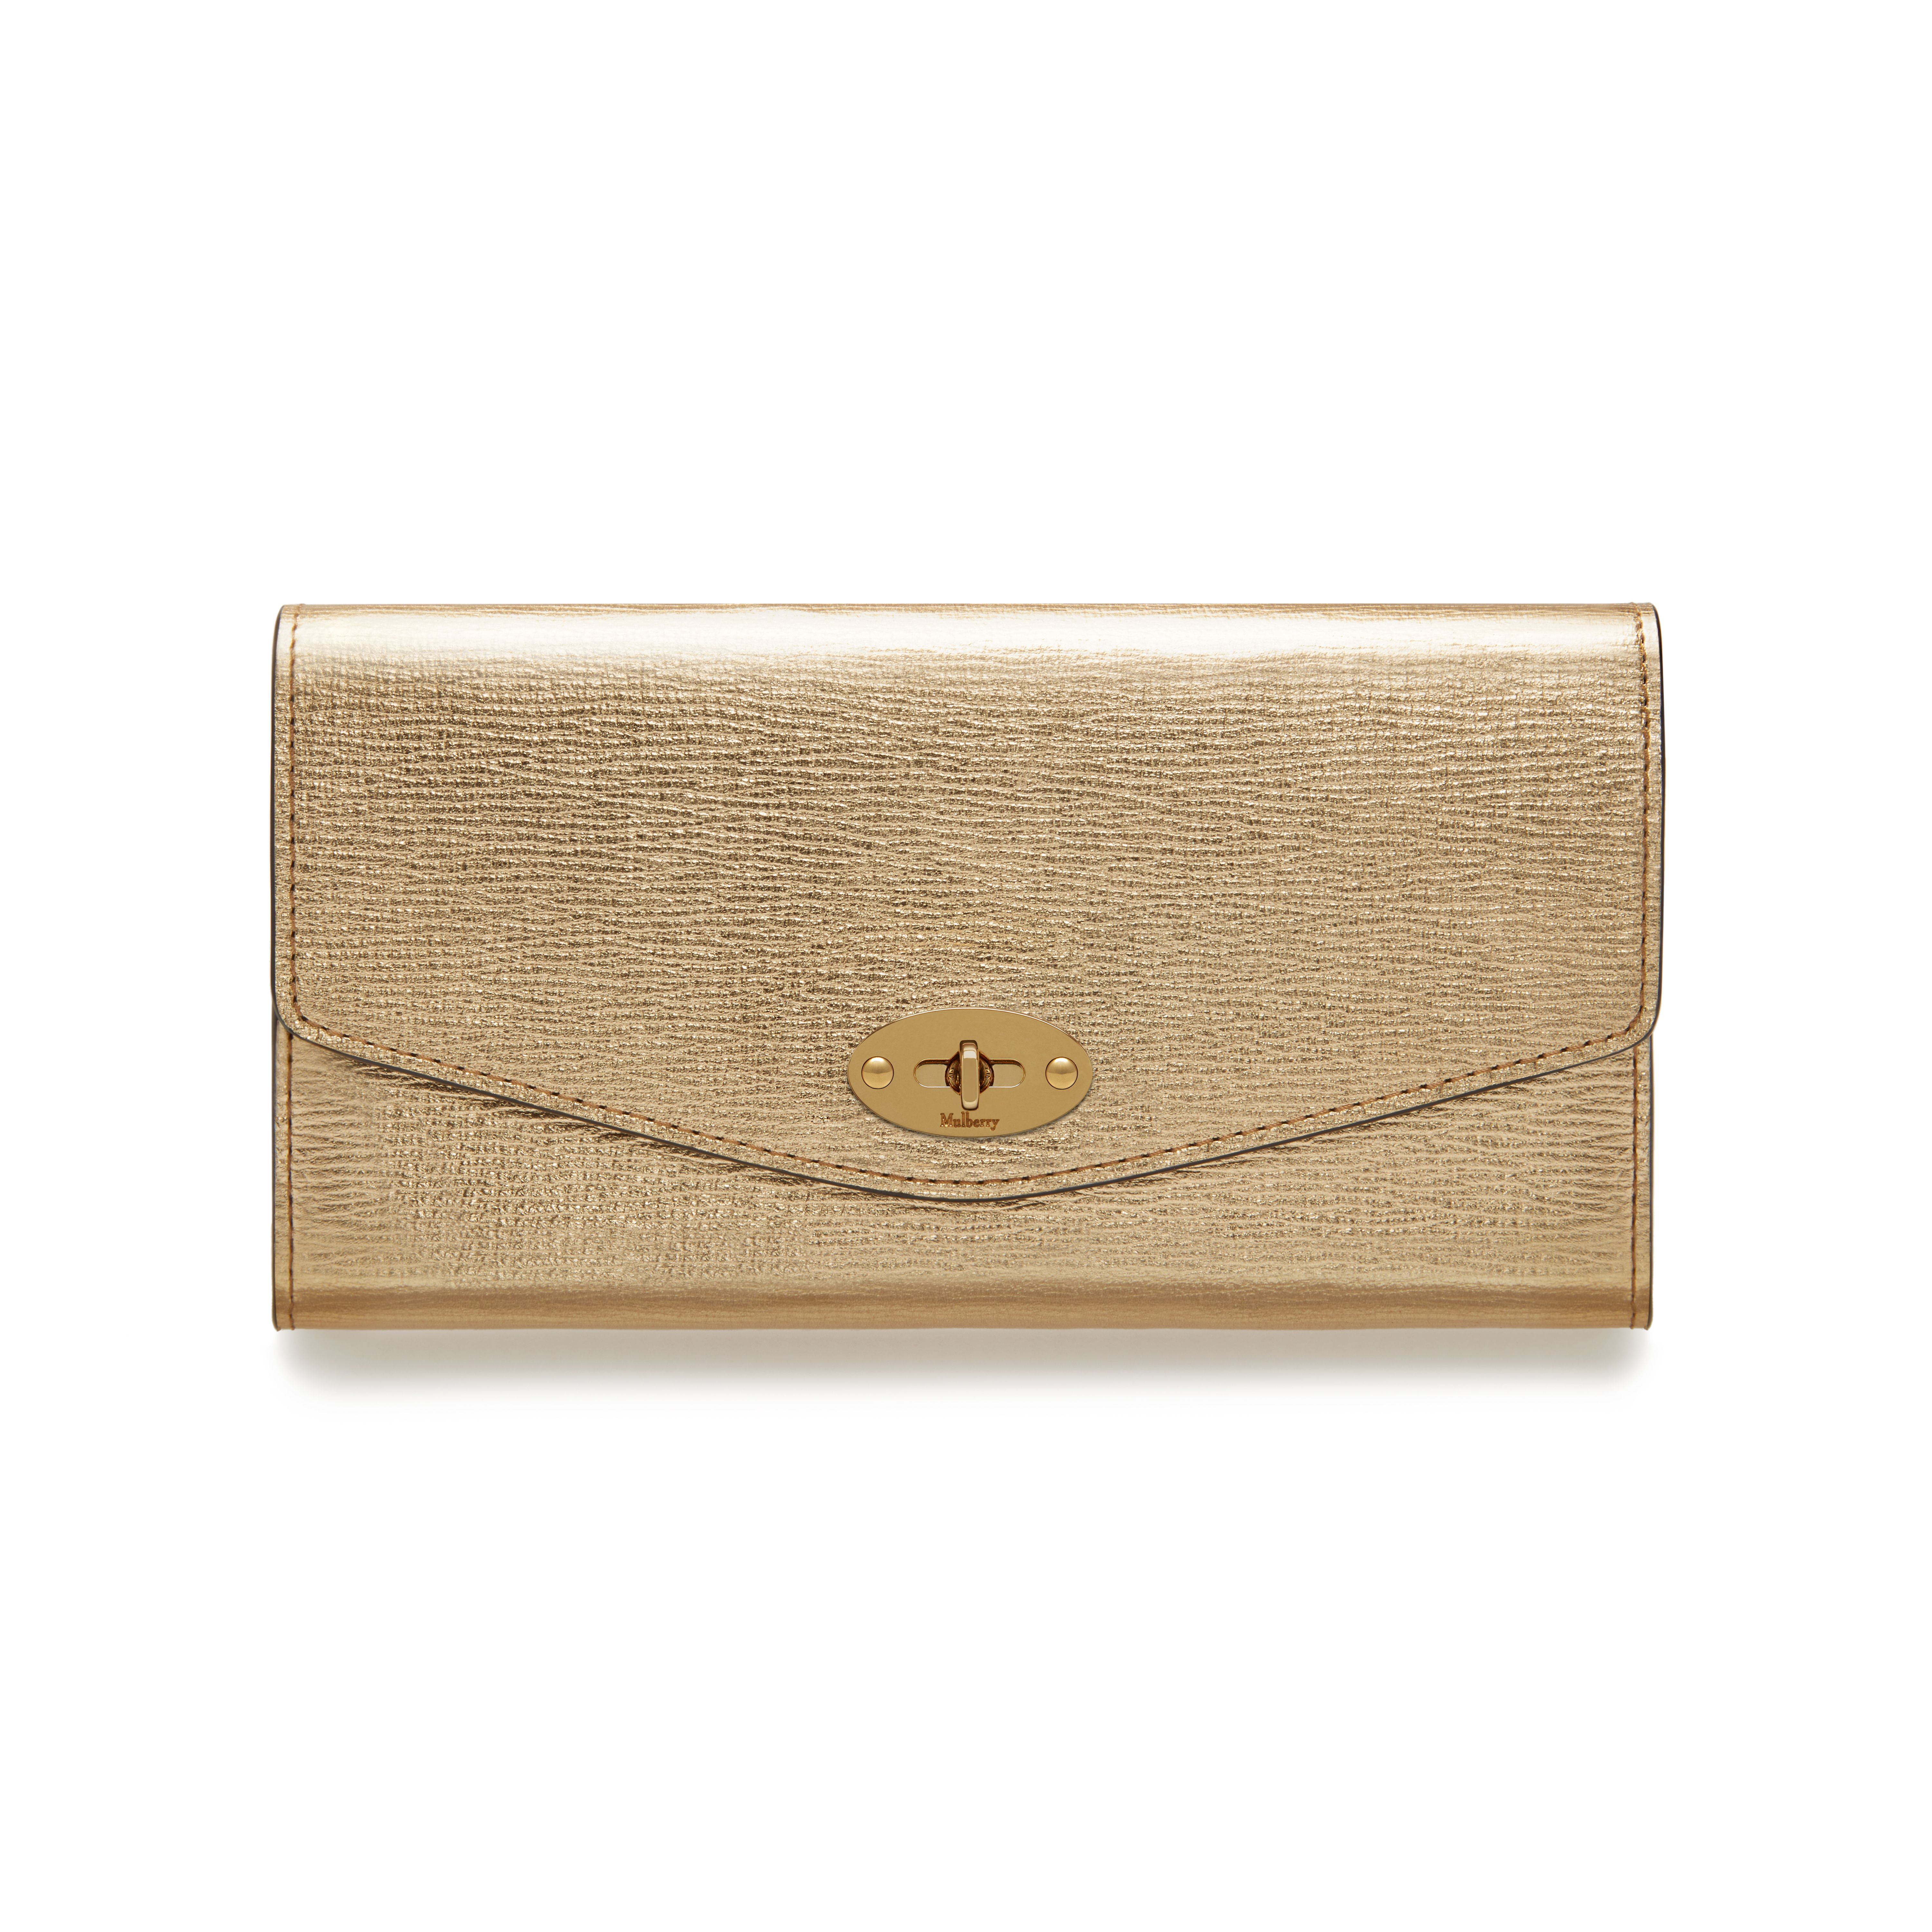 0acbdc2c0a73 ... where to buy darley wallet gold metallic printed goat darley mulberry  5c0d1 eadaf